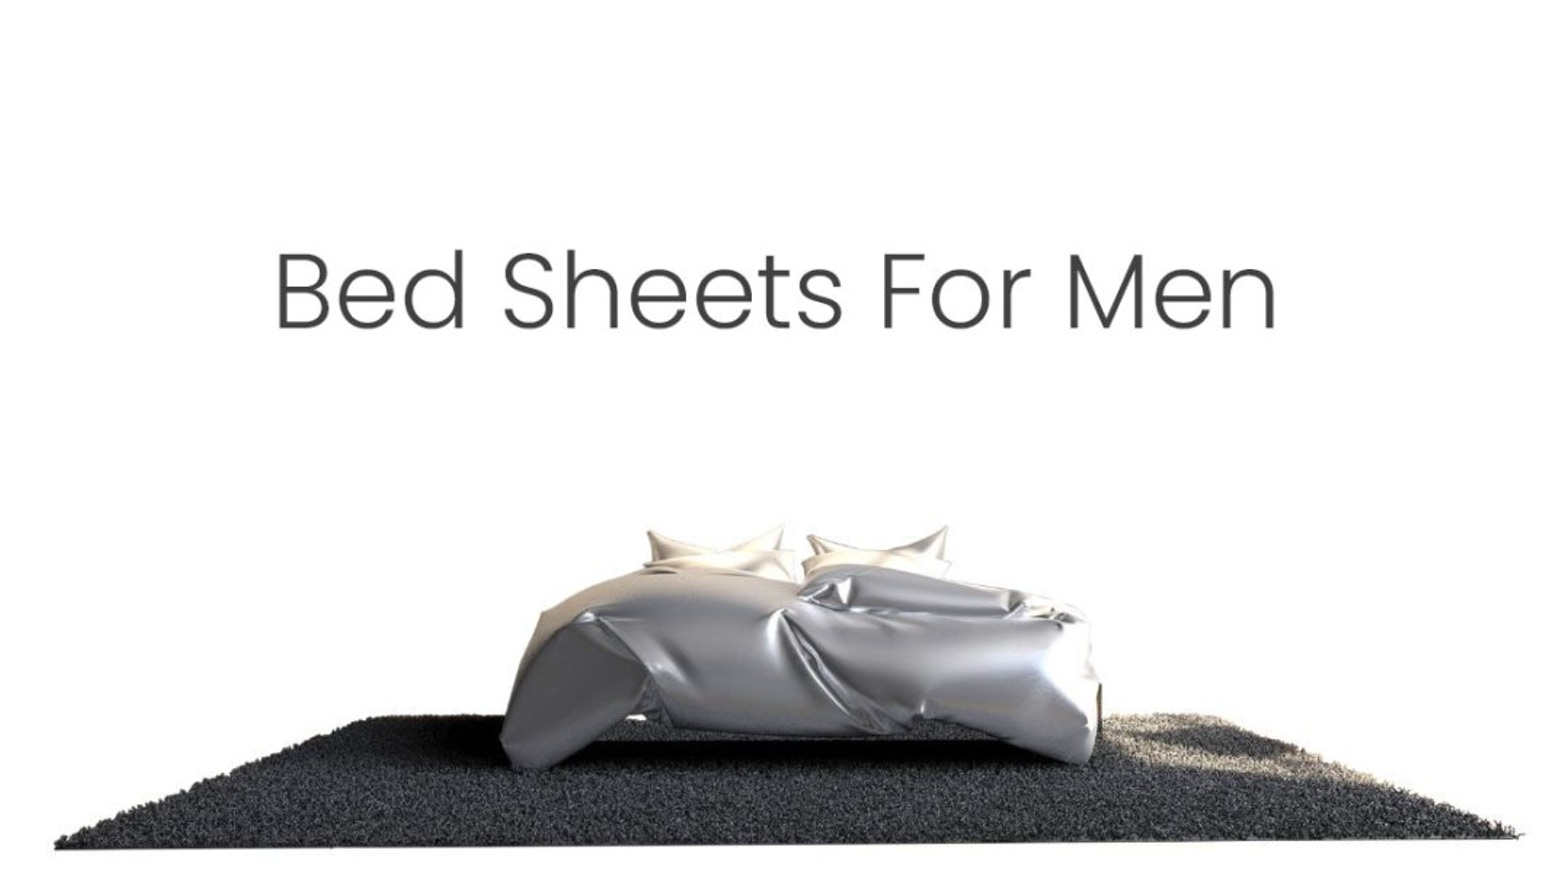 Bed sheets engineered to meet men's sleep needs